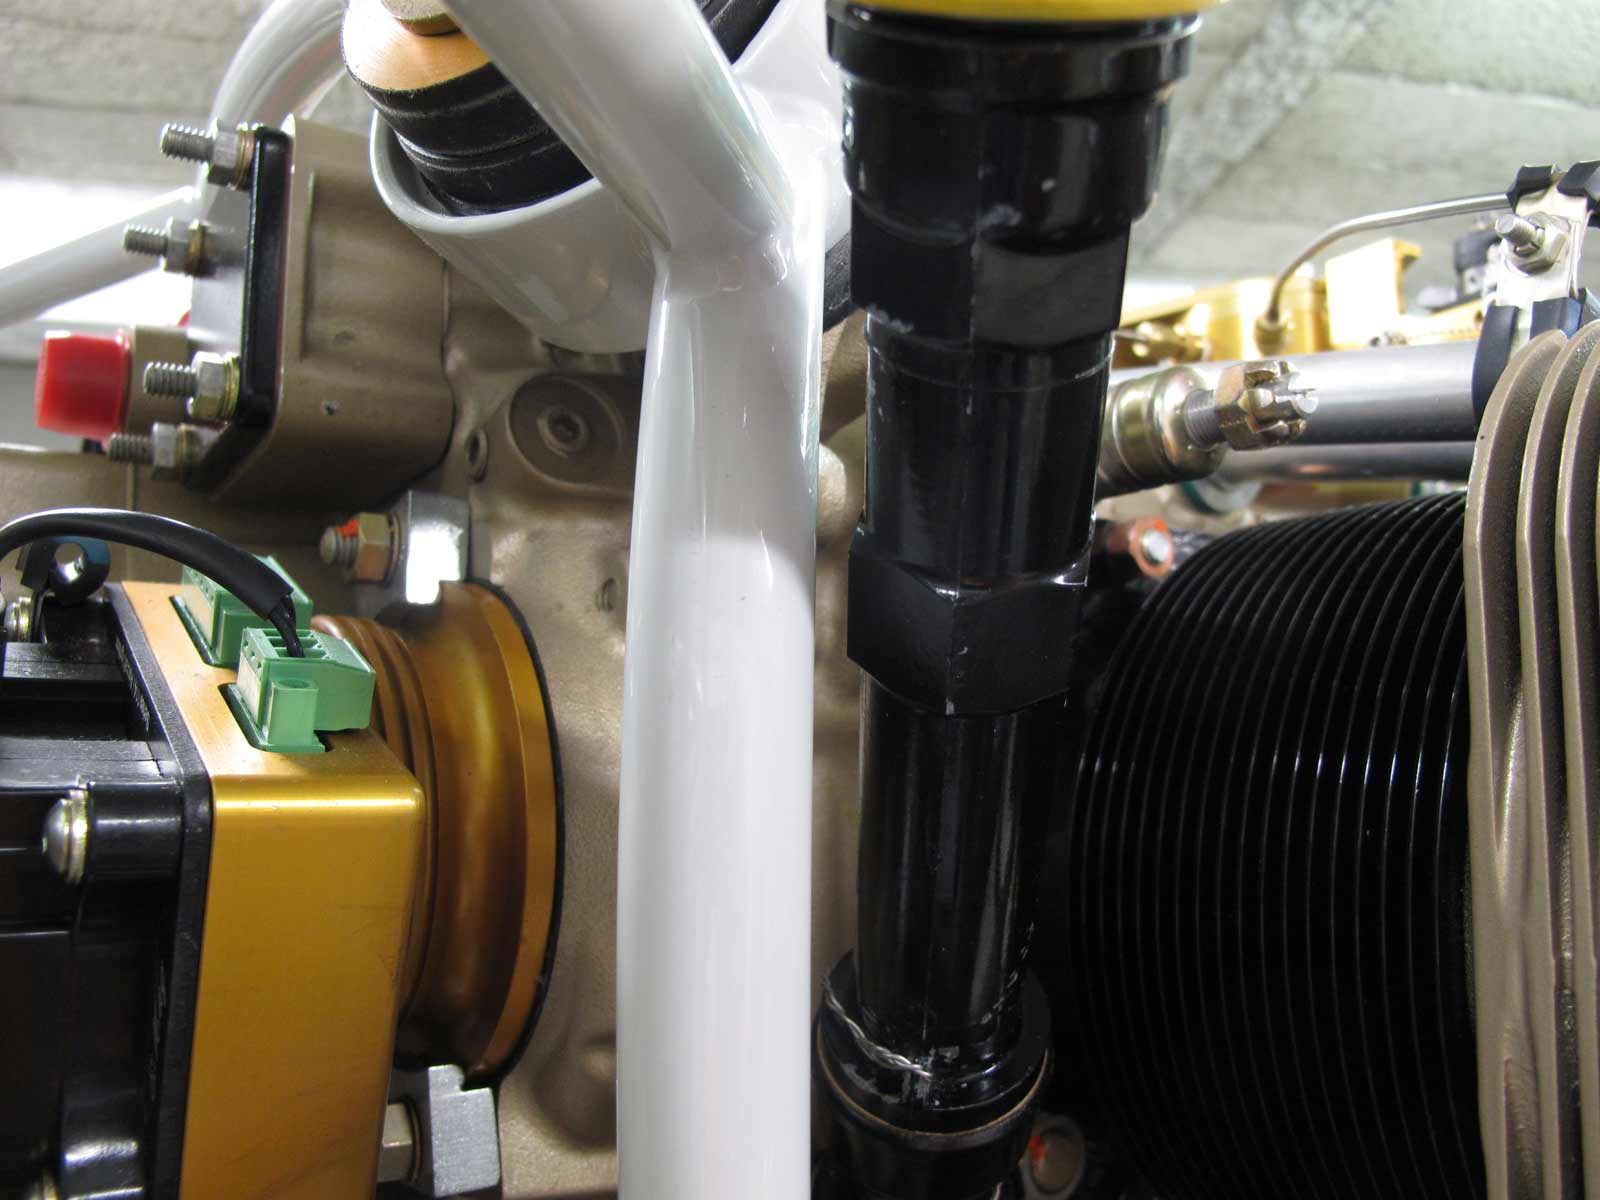 Simplified safety wire due to small extension being closer to the engine block.